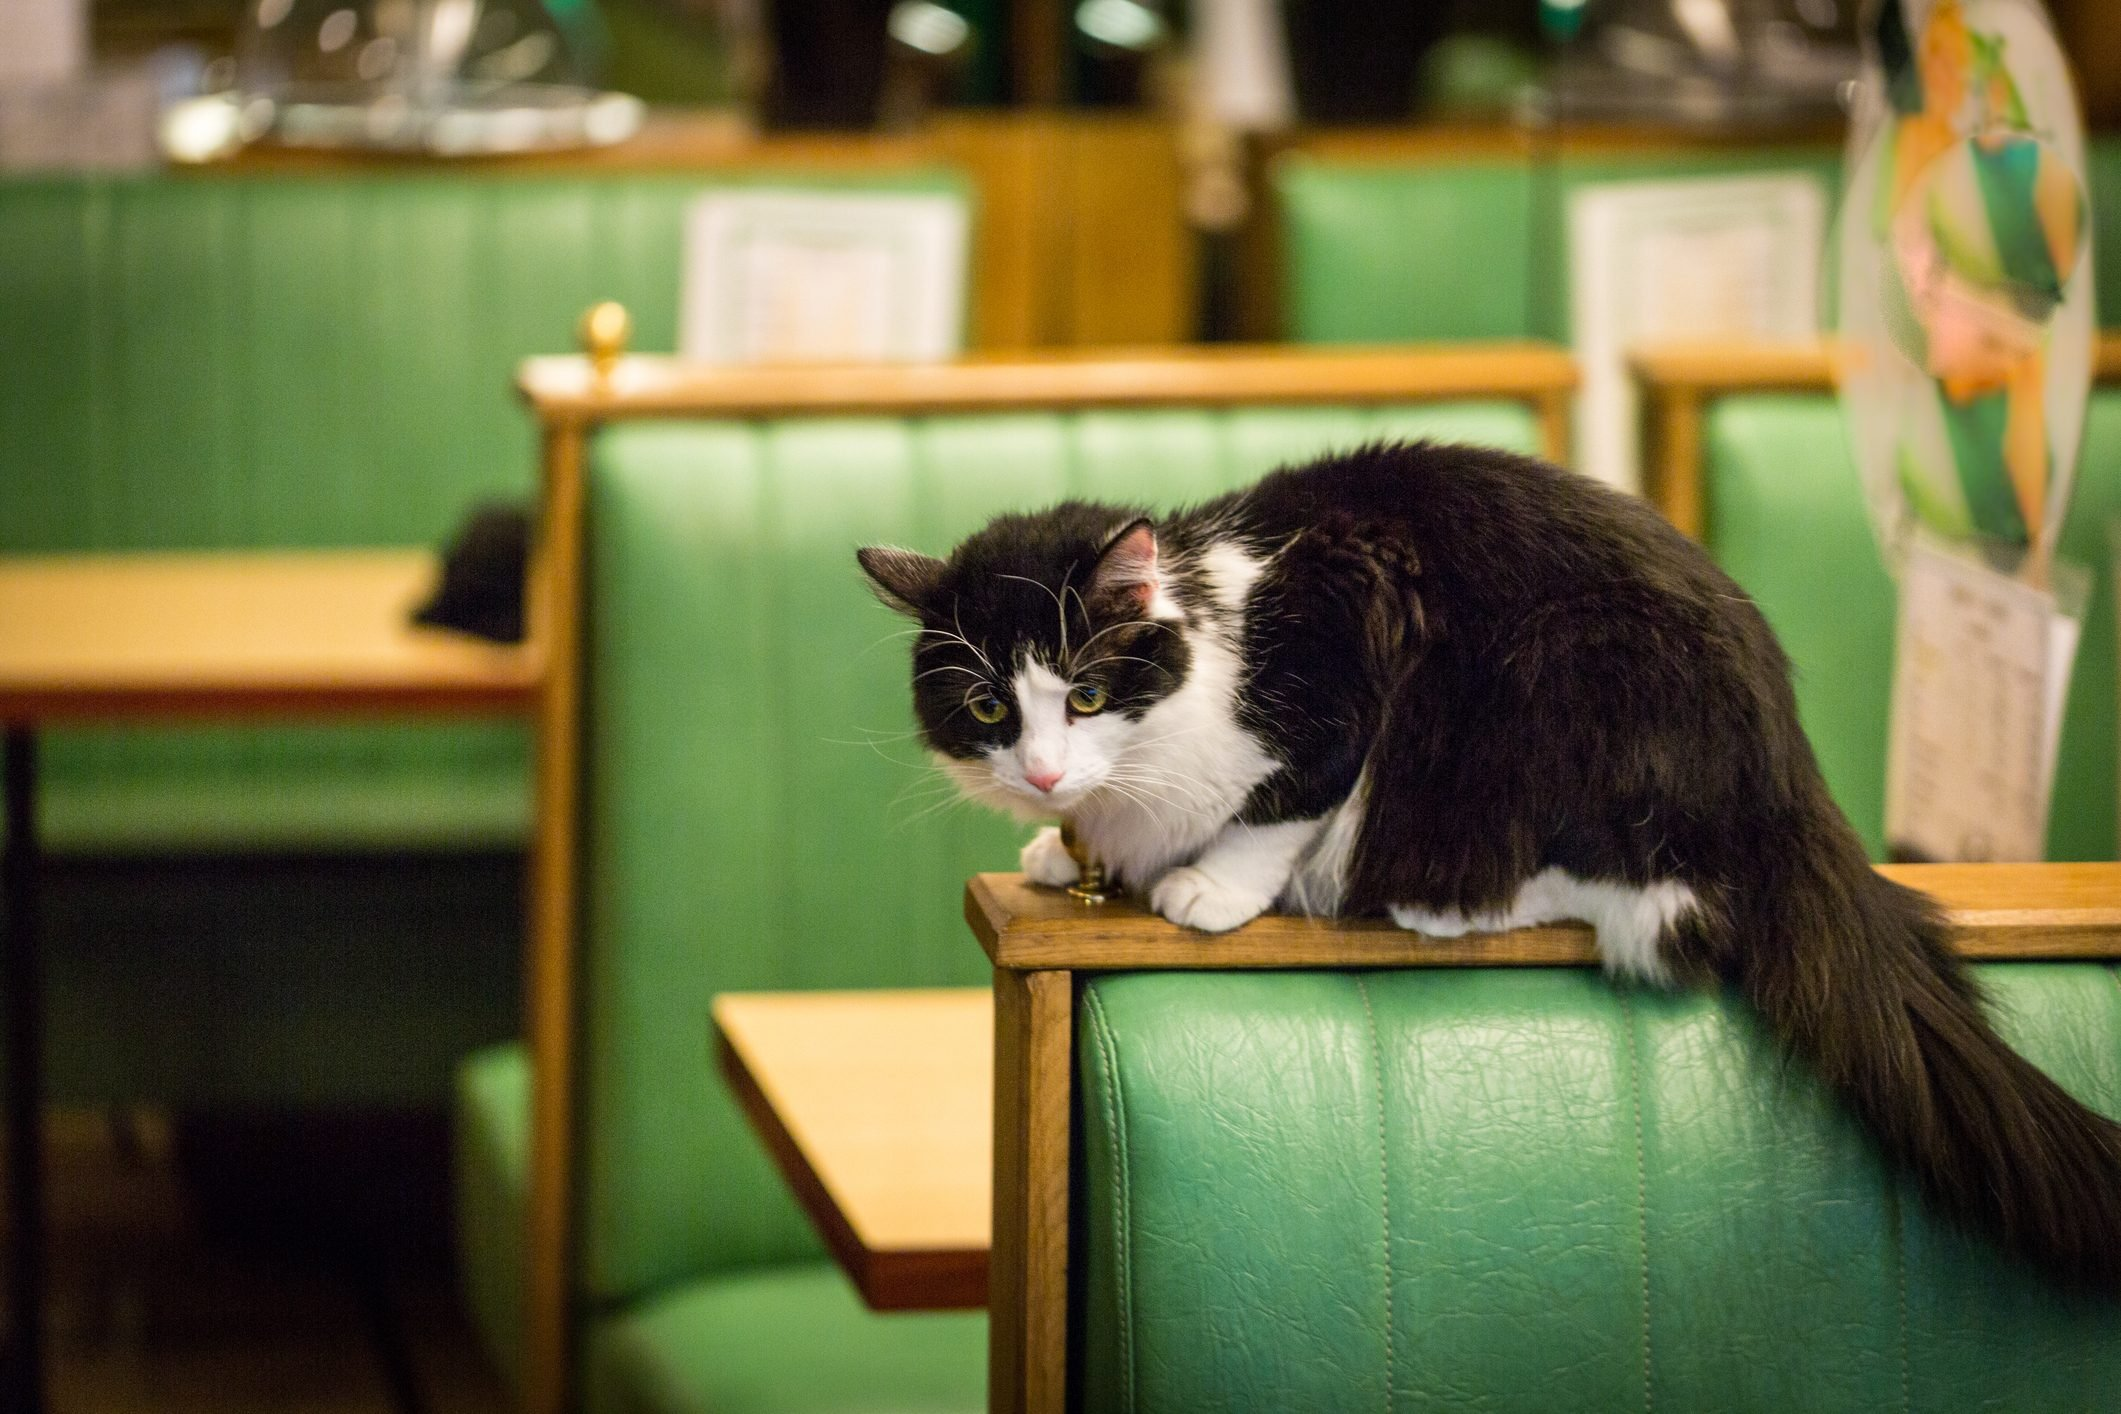 Cat on a booth in a Restaurant